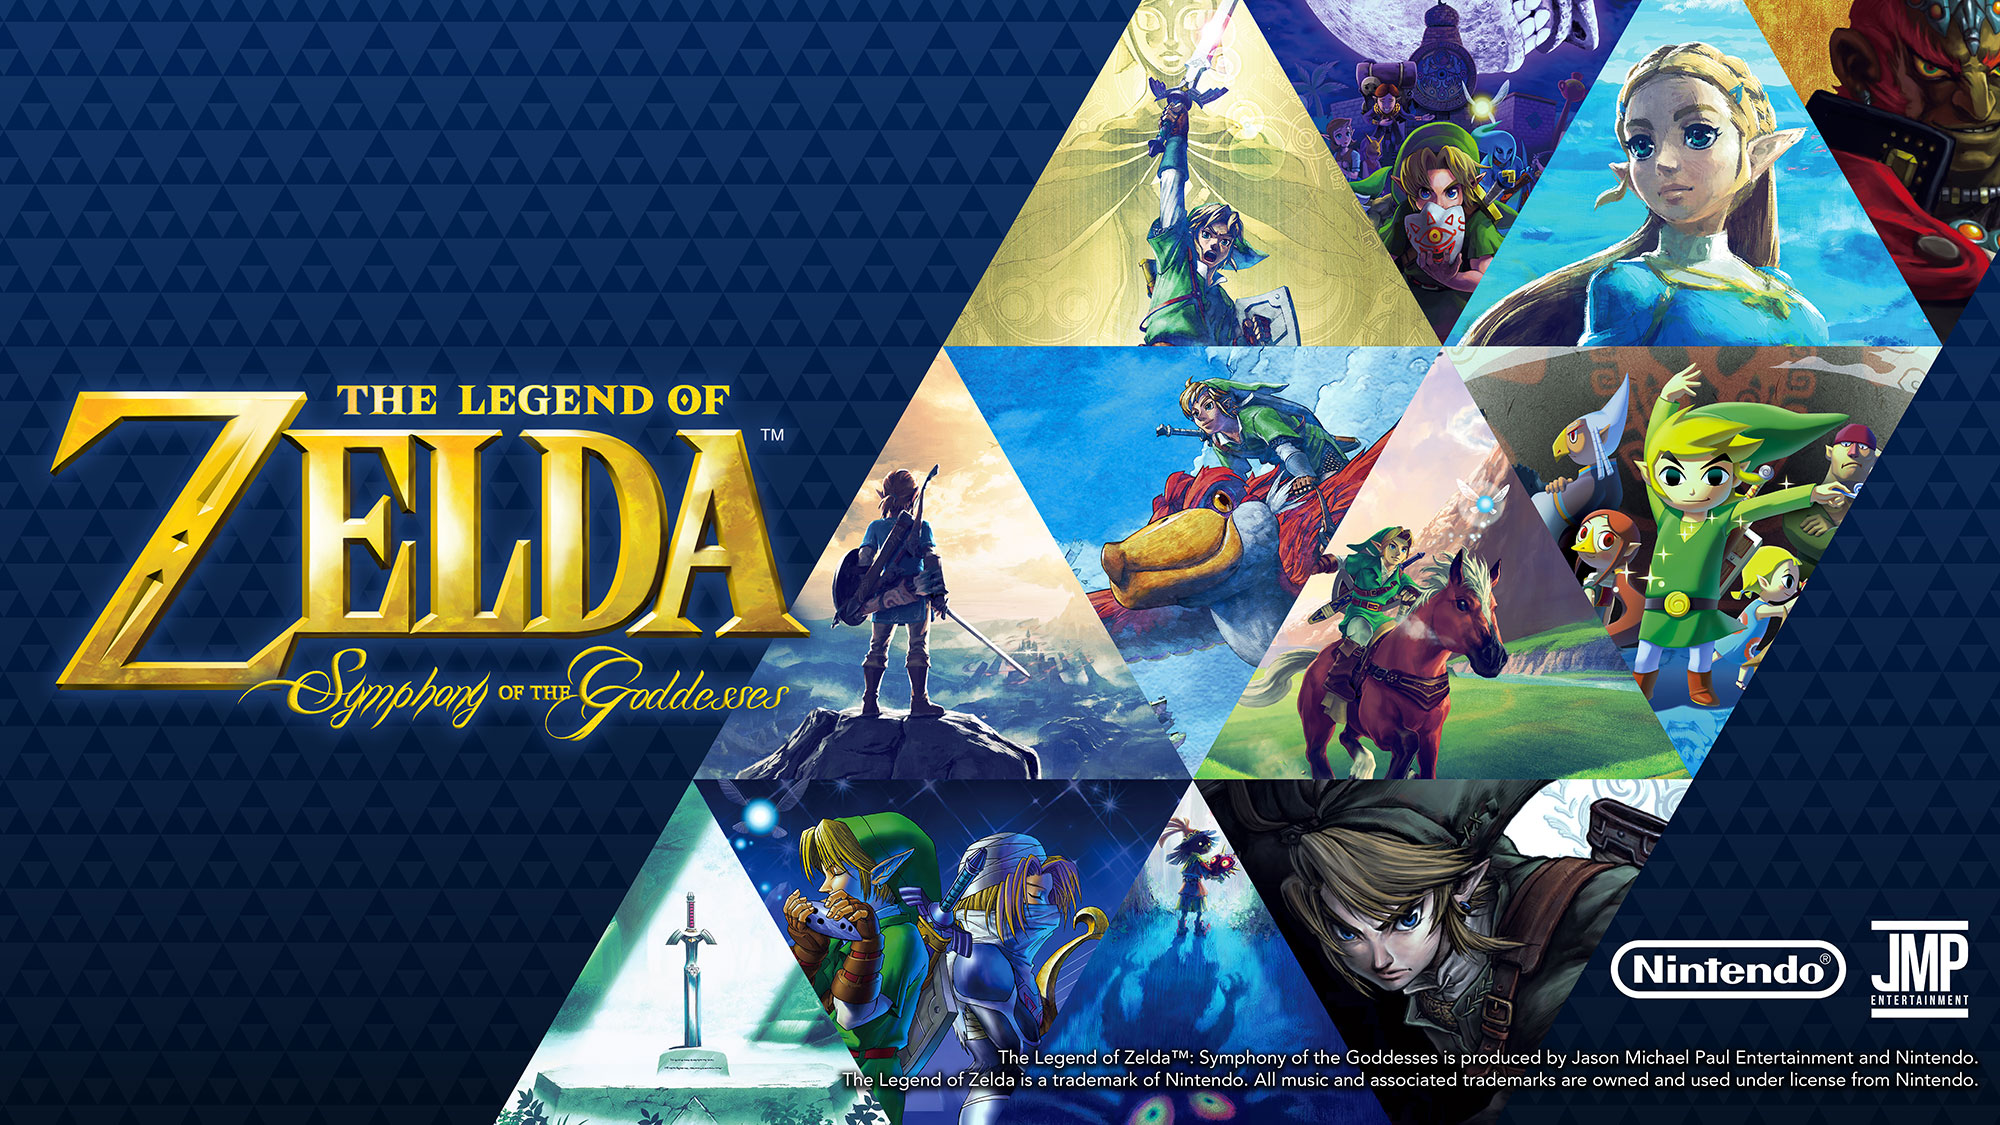 The Legend of Zelda: Symphony of the Goddesses in Singapore